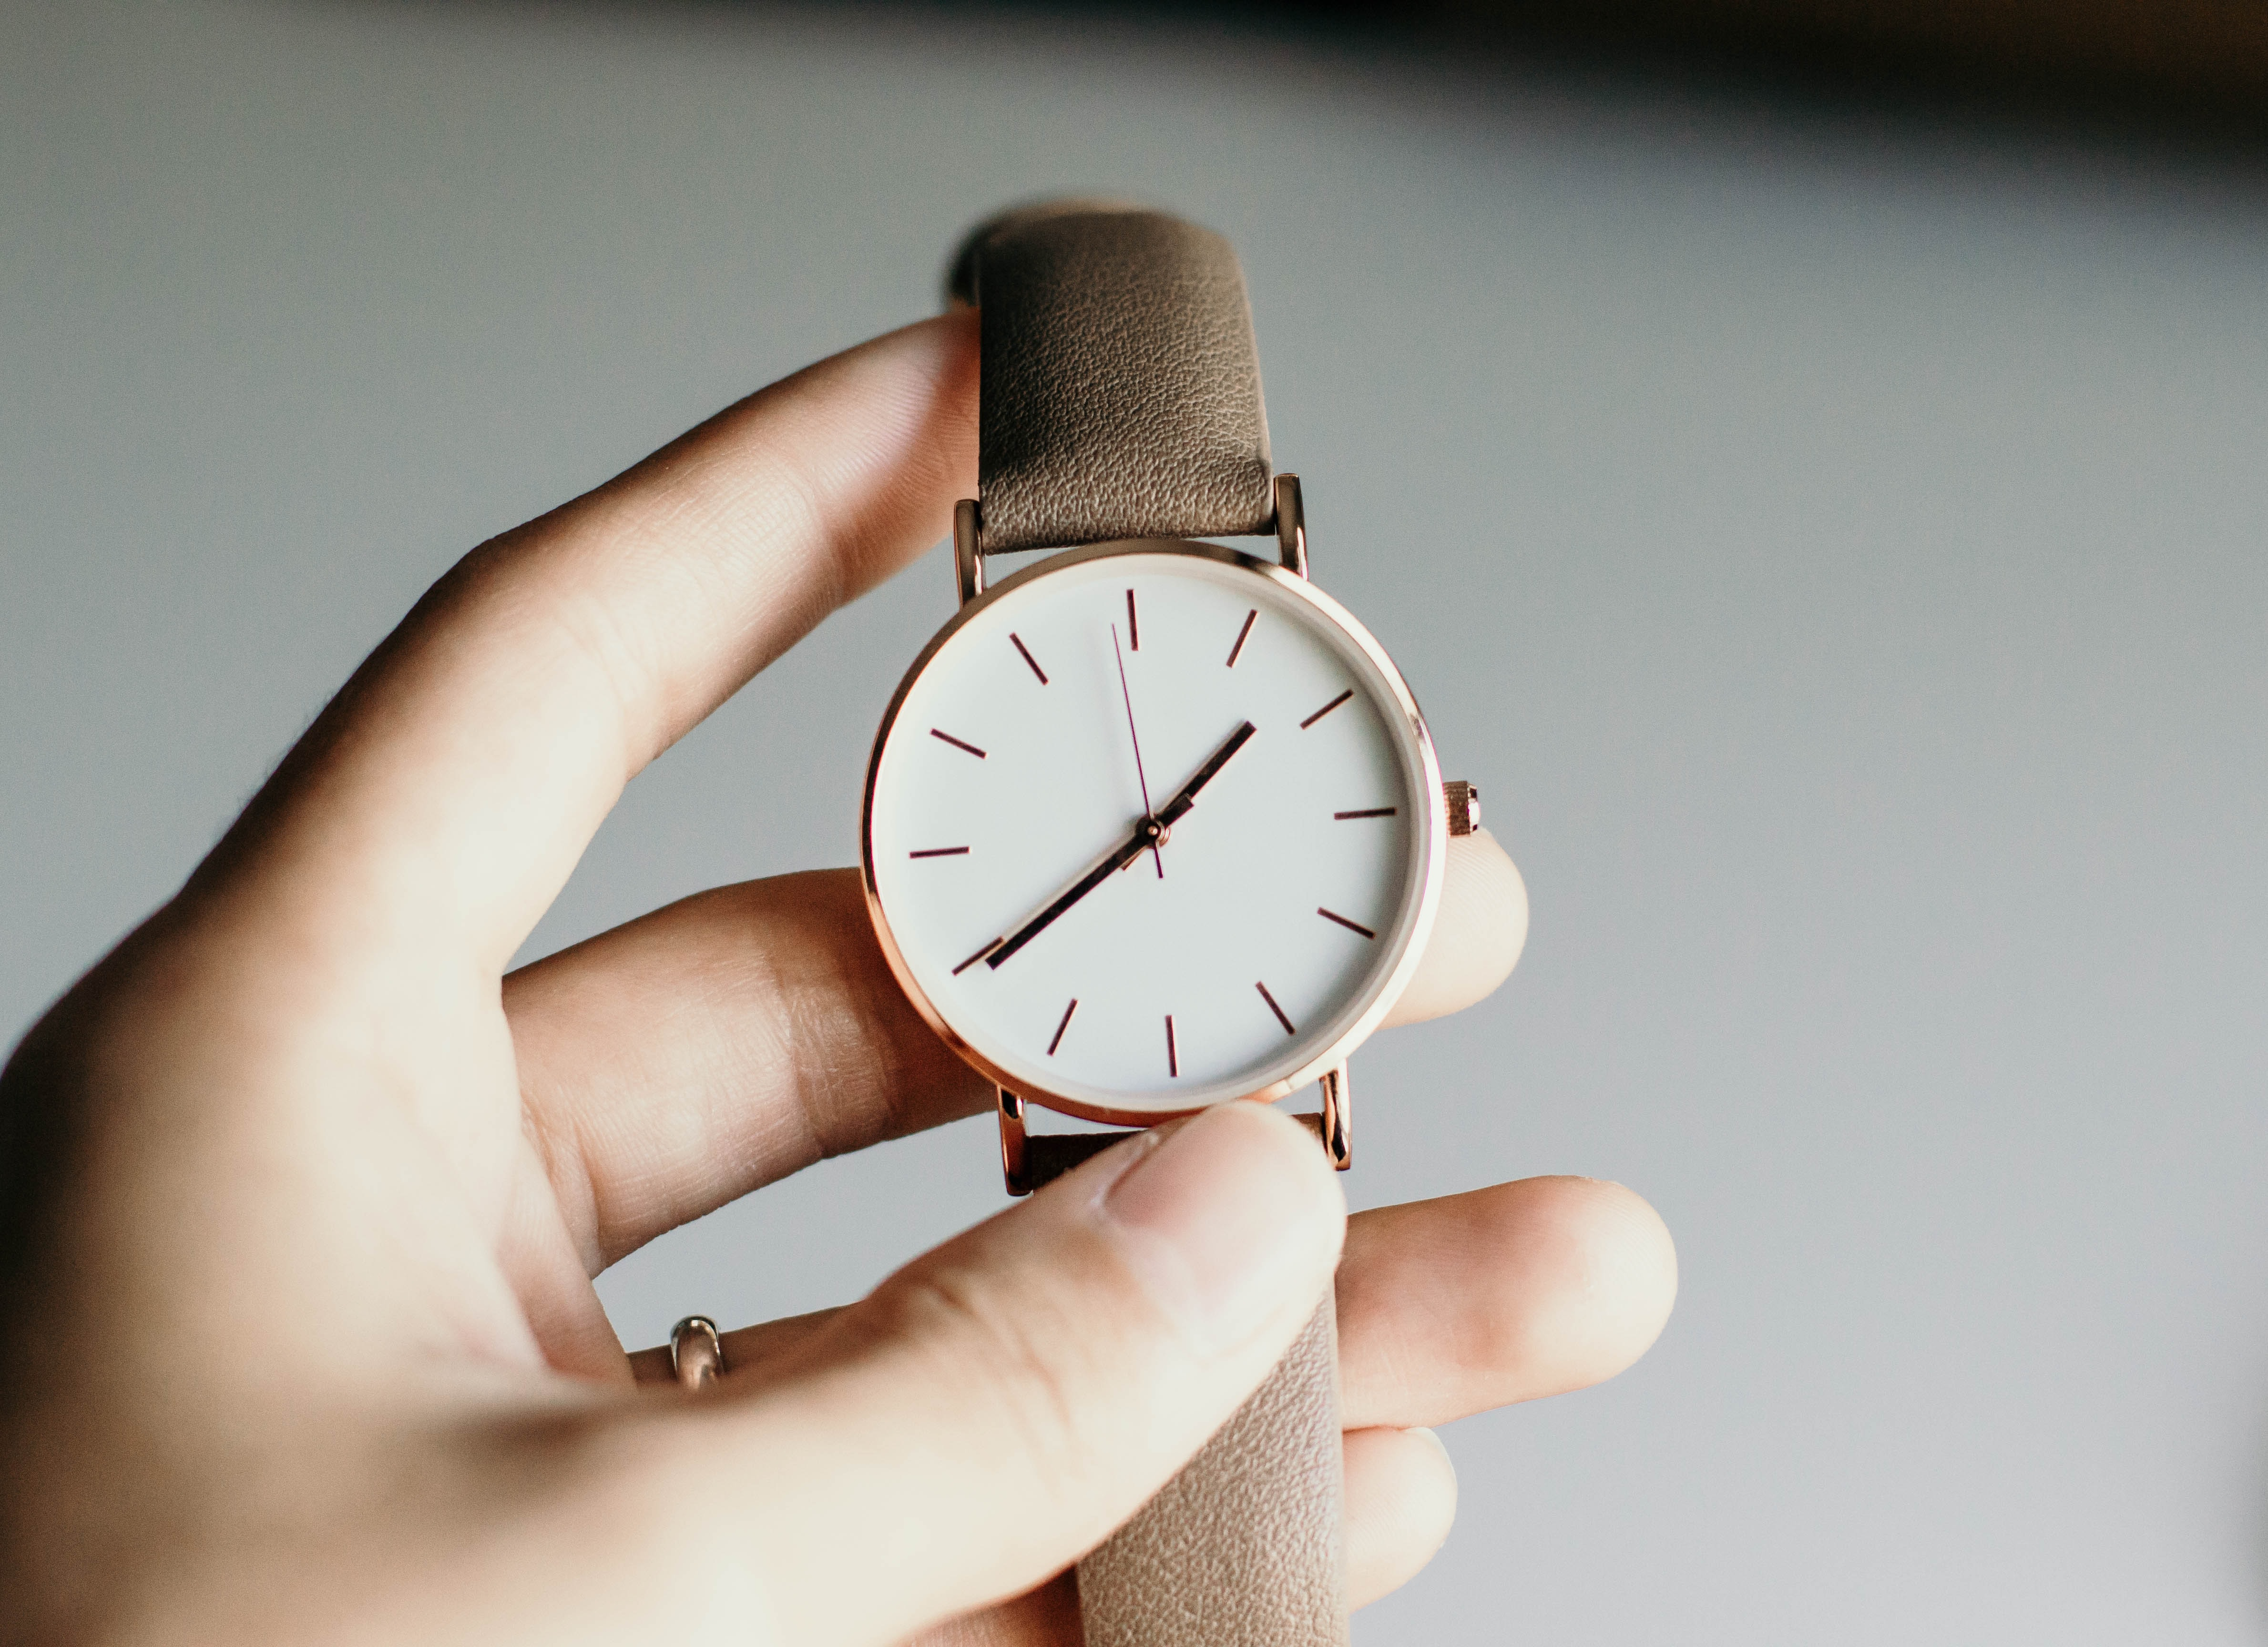 Why I stopped using my watch for 8 months